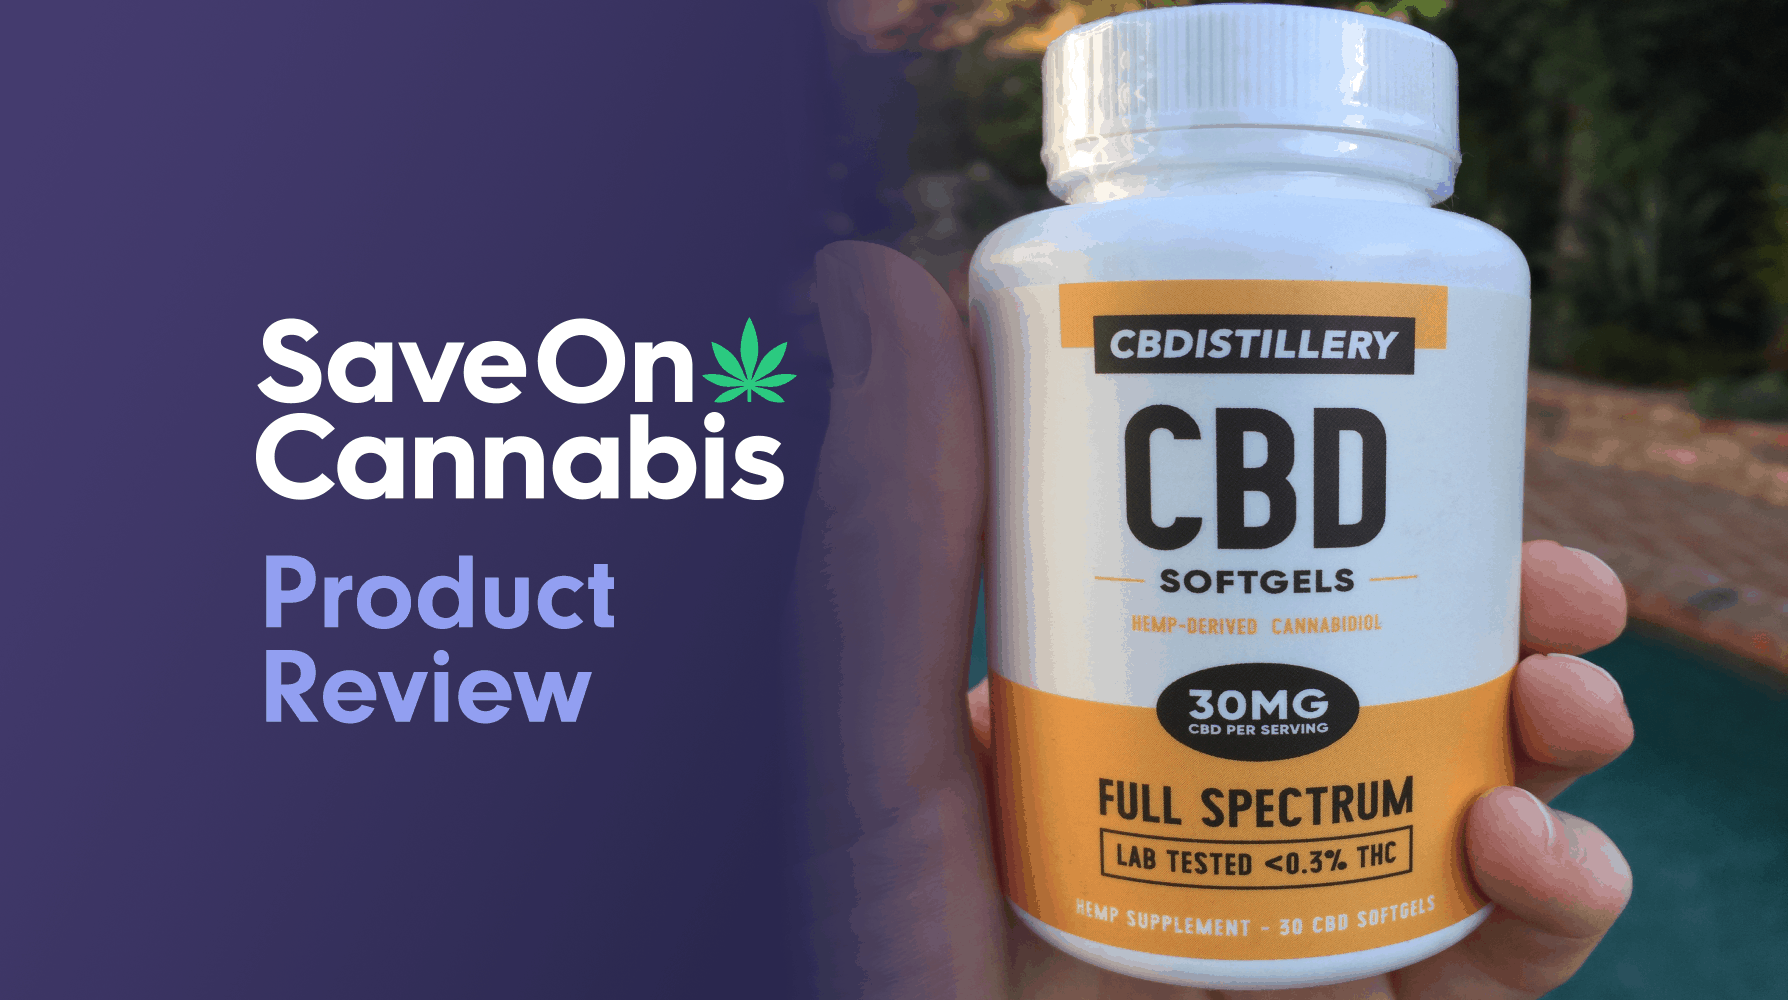 cbdistillery full spectrum cbd softgels save on cannabis review website